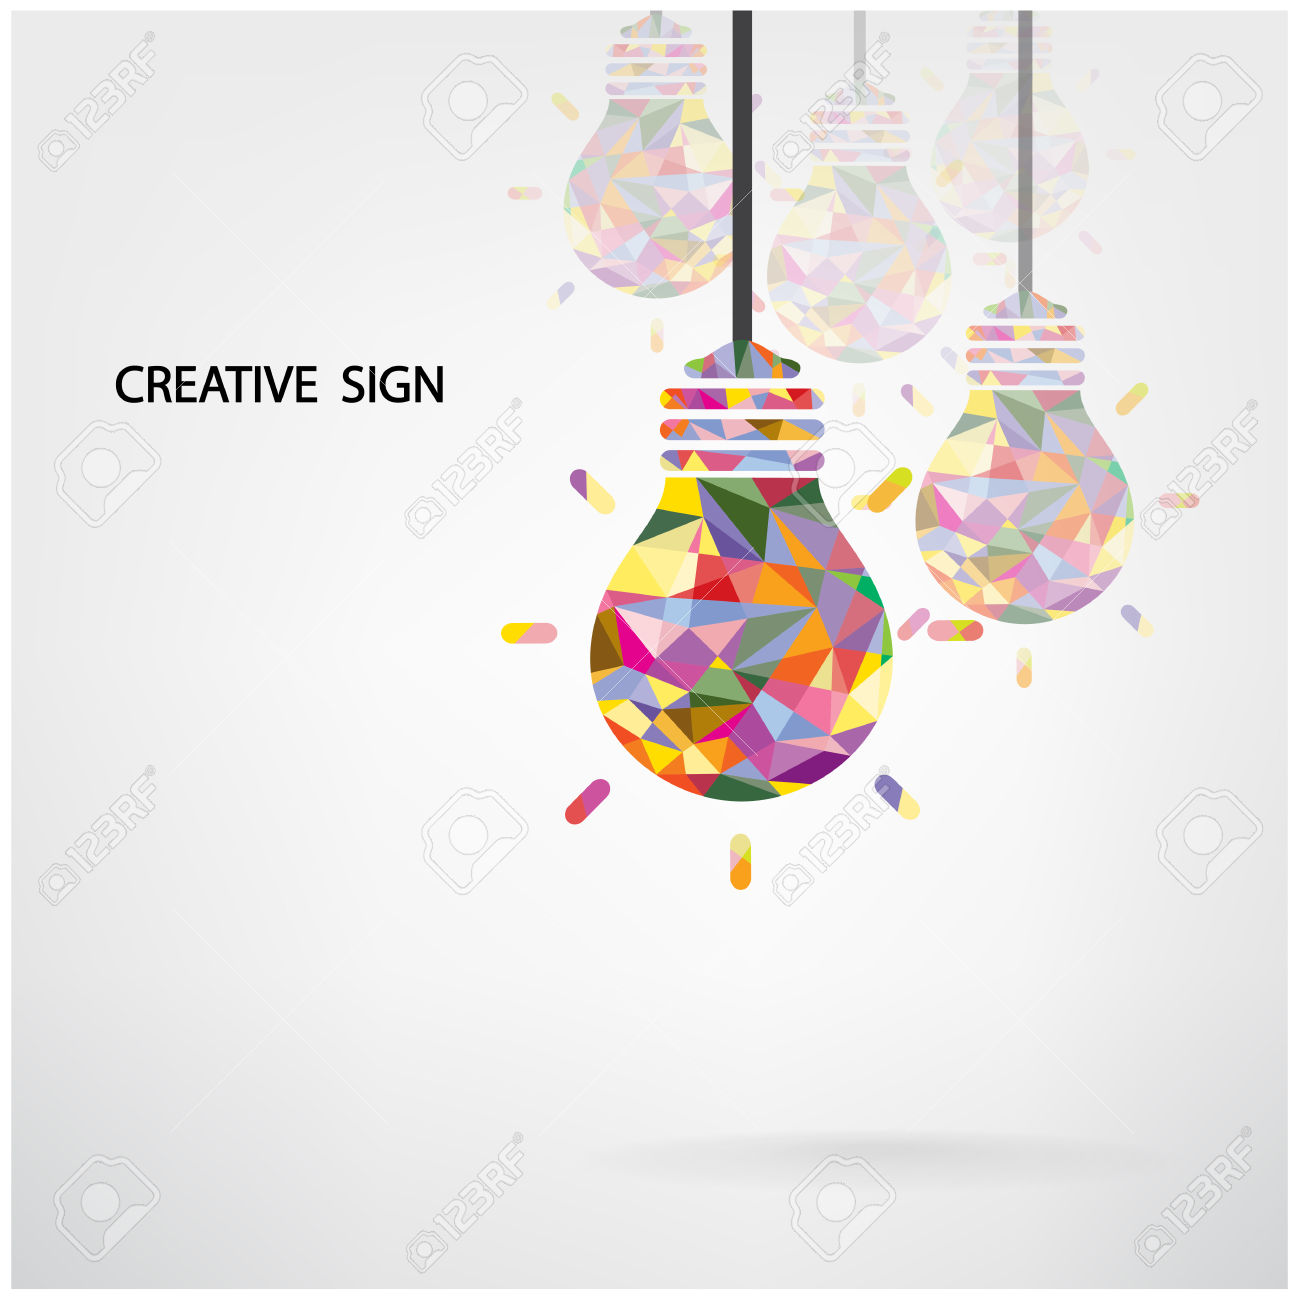 Creative Light Bulb Idea Concept Background Design For Poster.